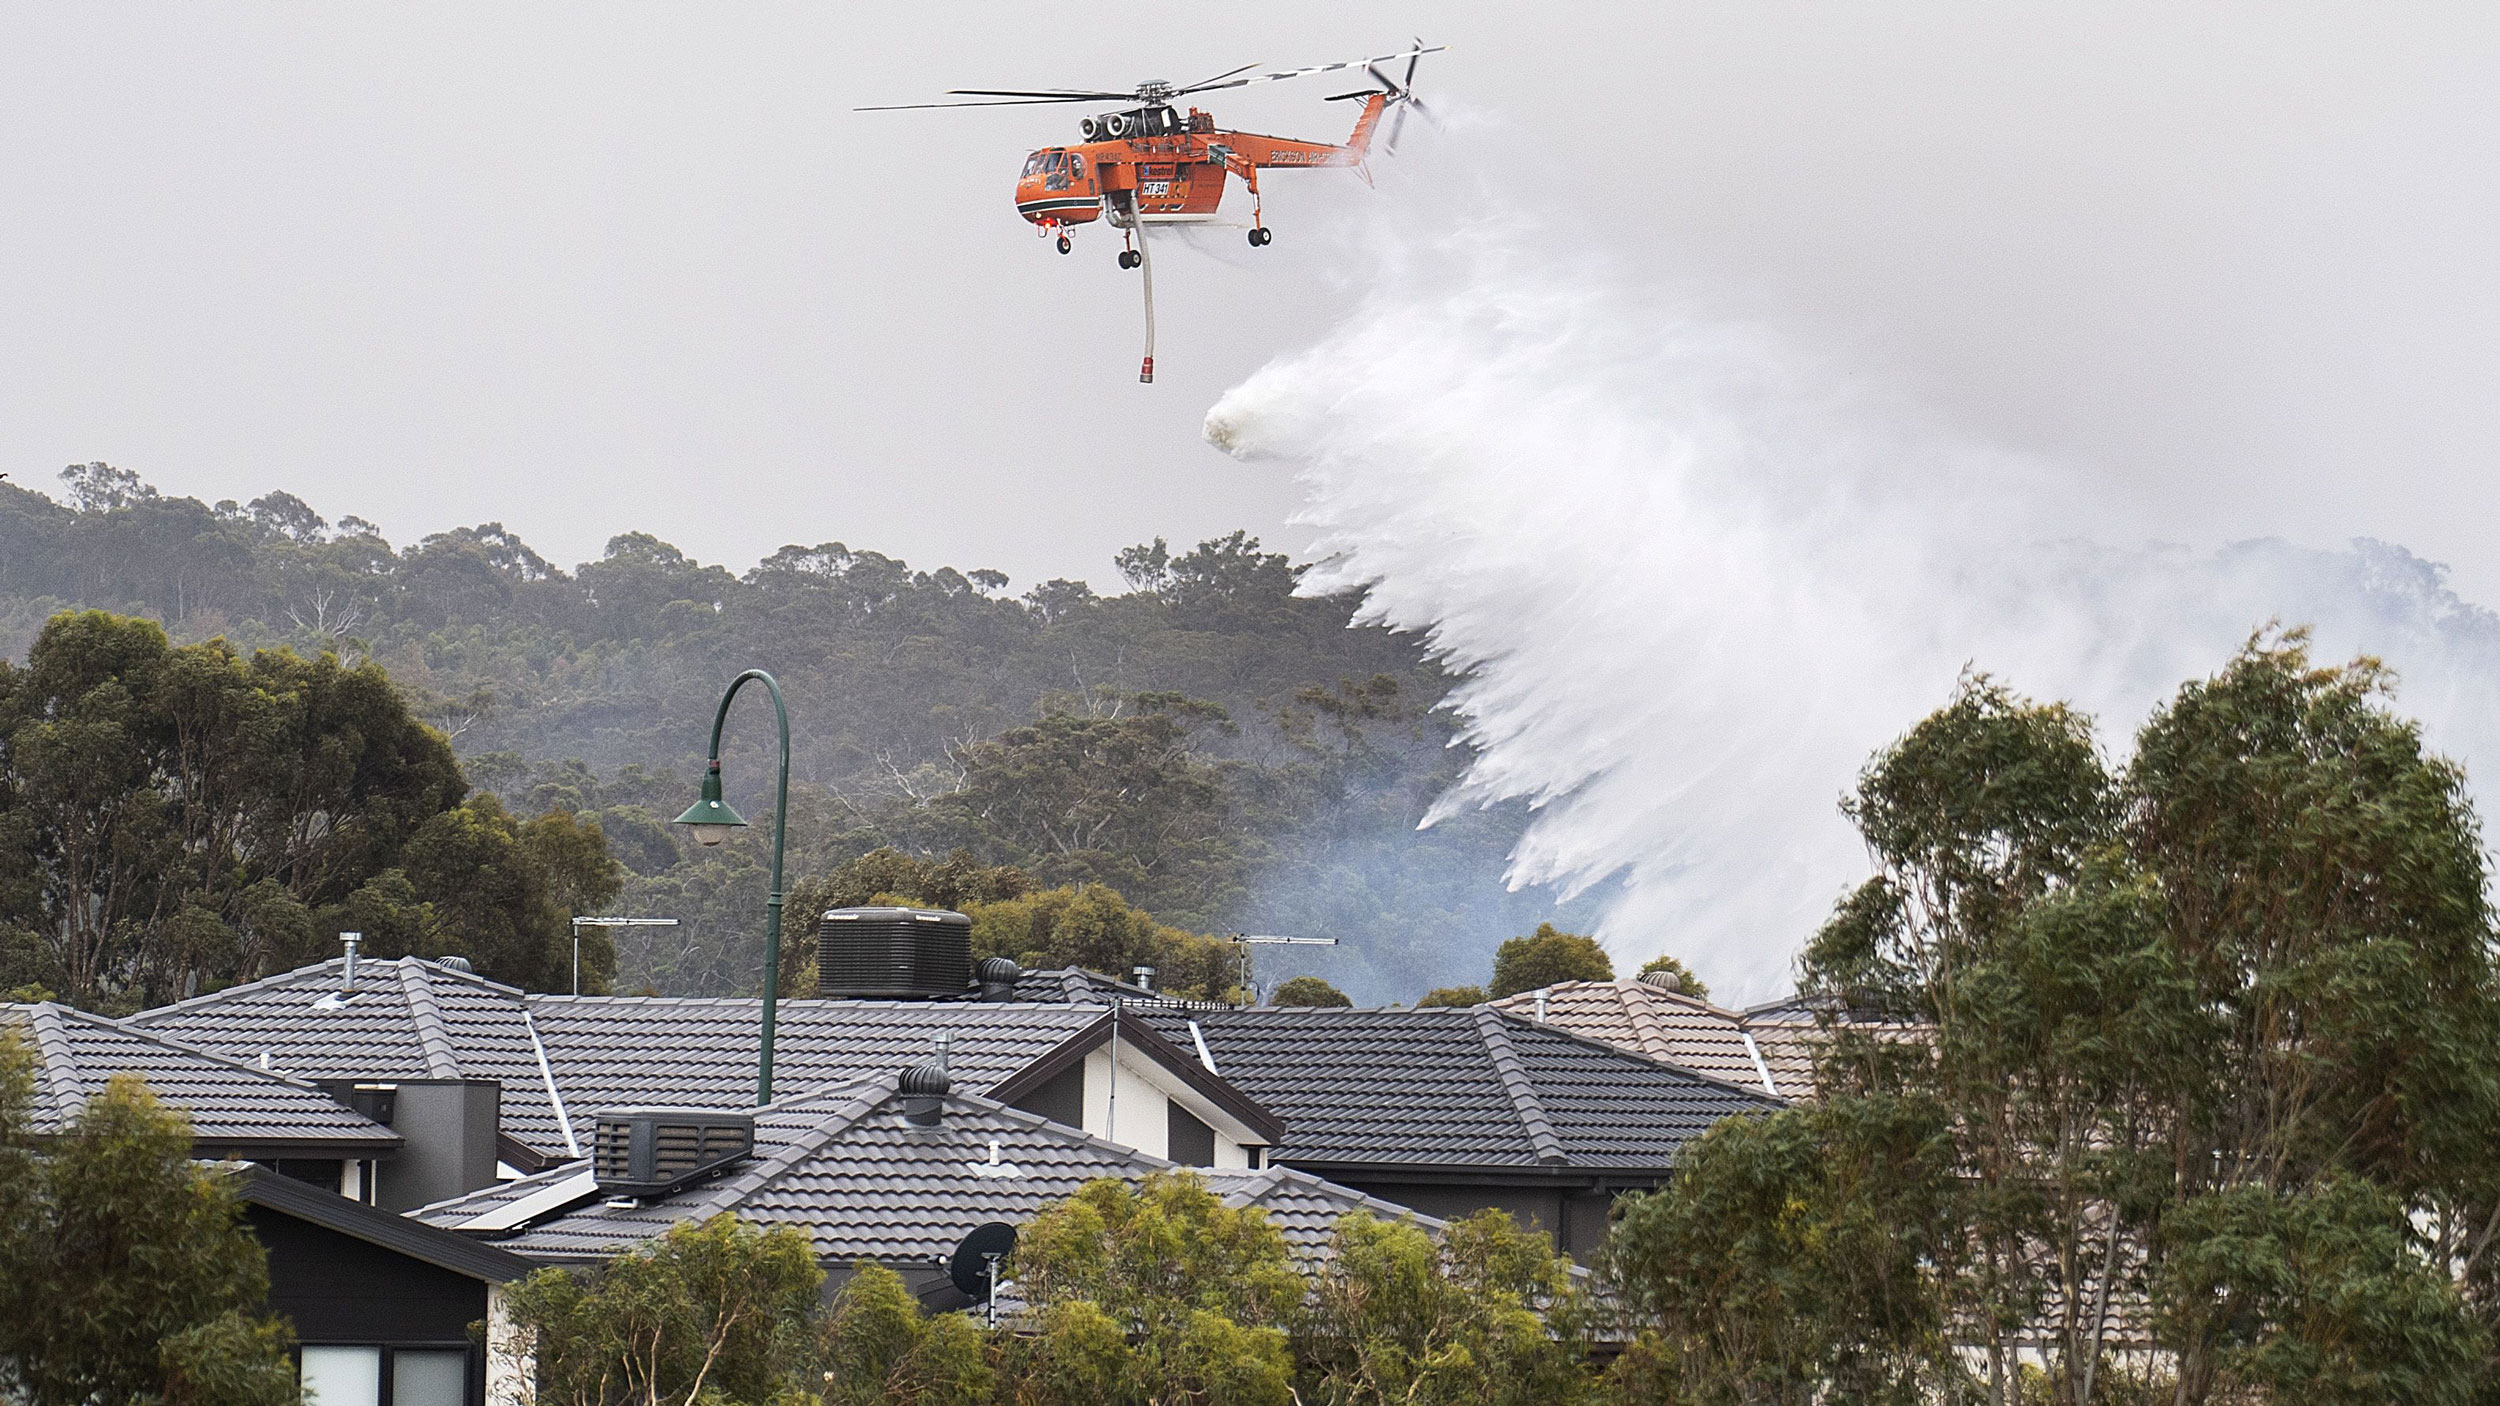 A large emergency helicopter is shown flying above several houses and dropping a large quantity of water.